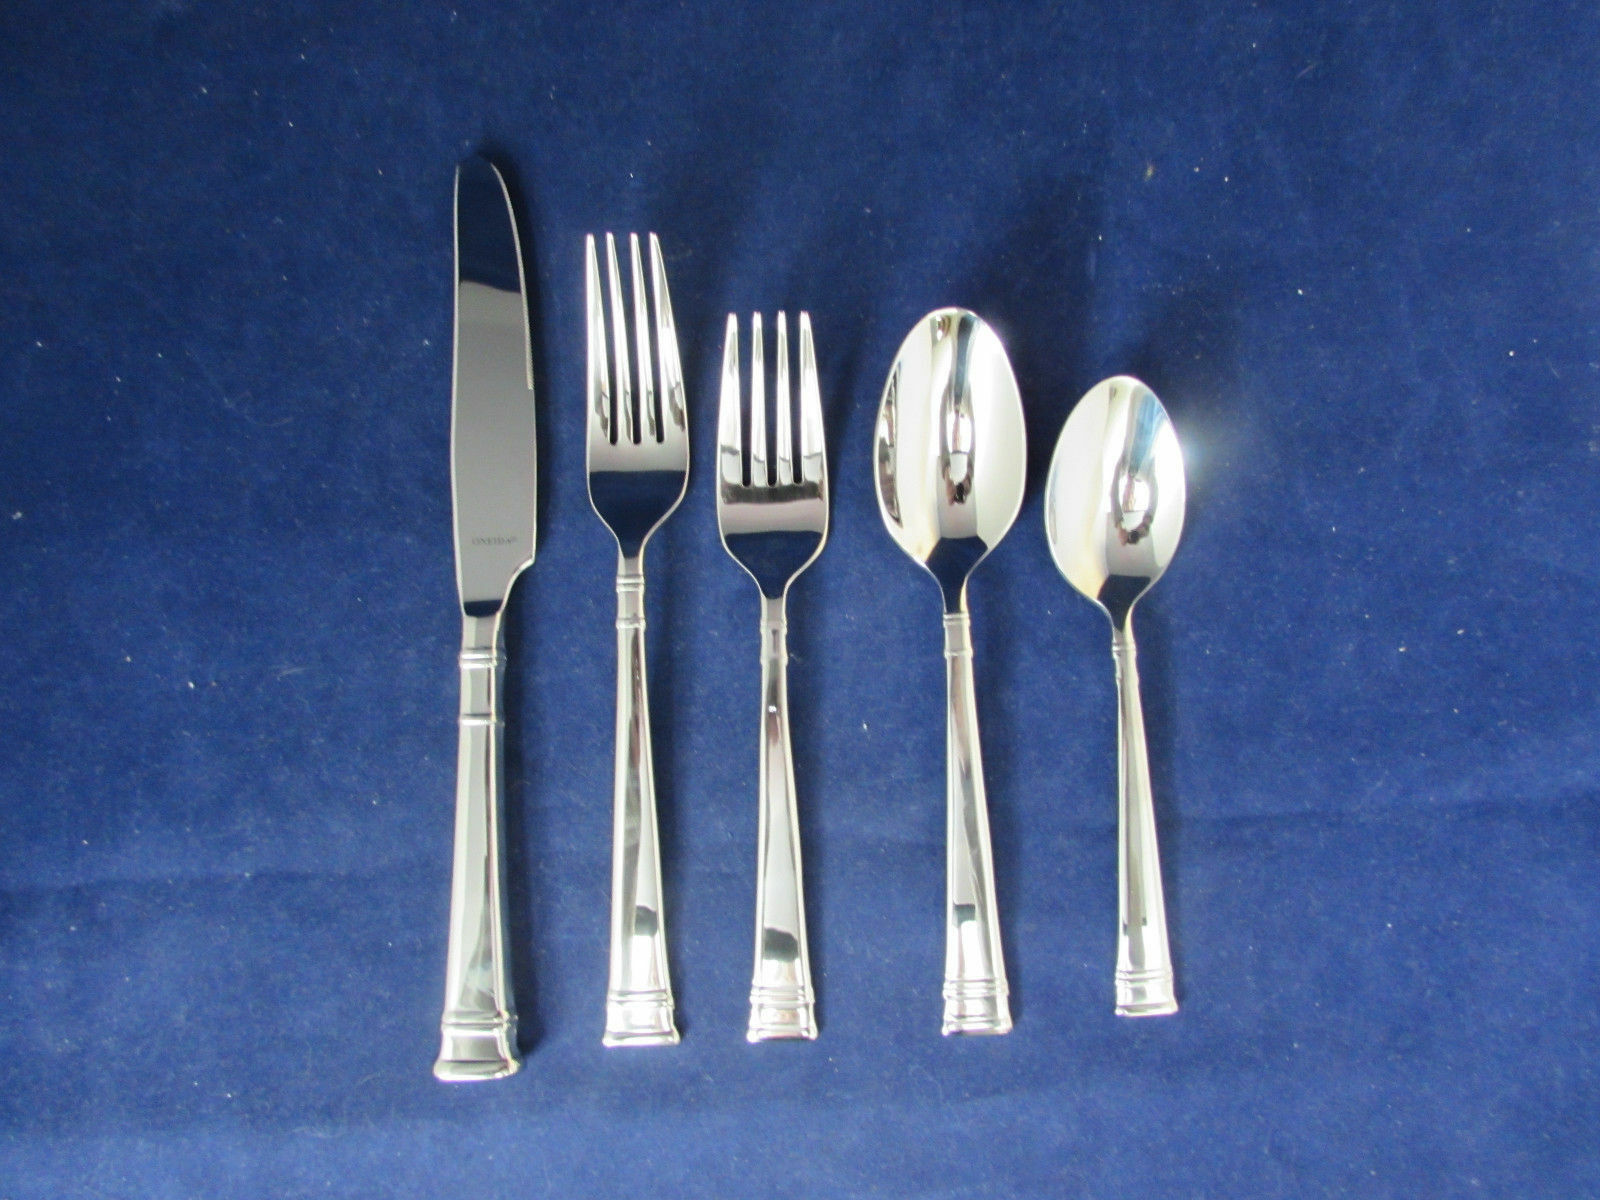 flatware silverware kitchen tableware collectibles oneida stainless prose 5pc place setting s new